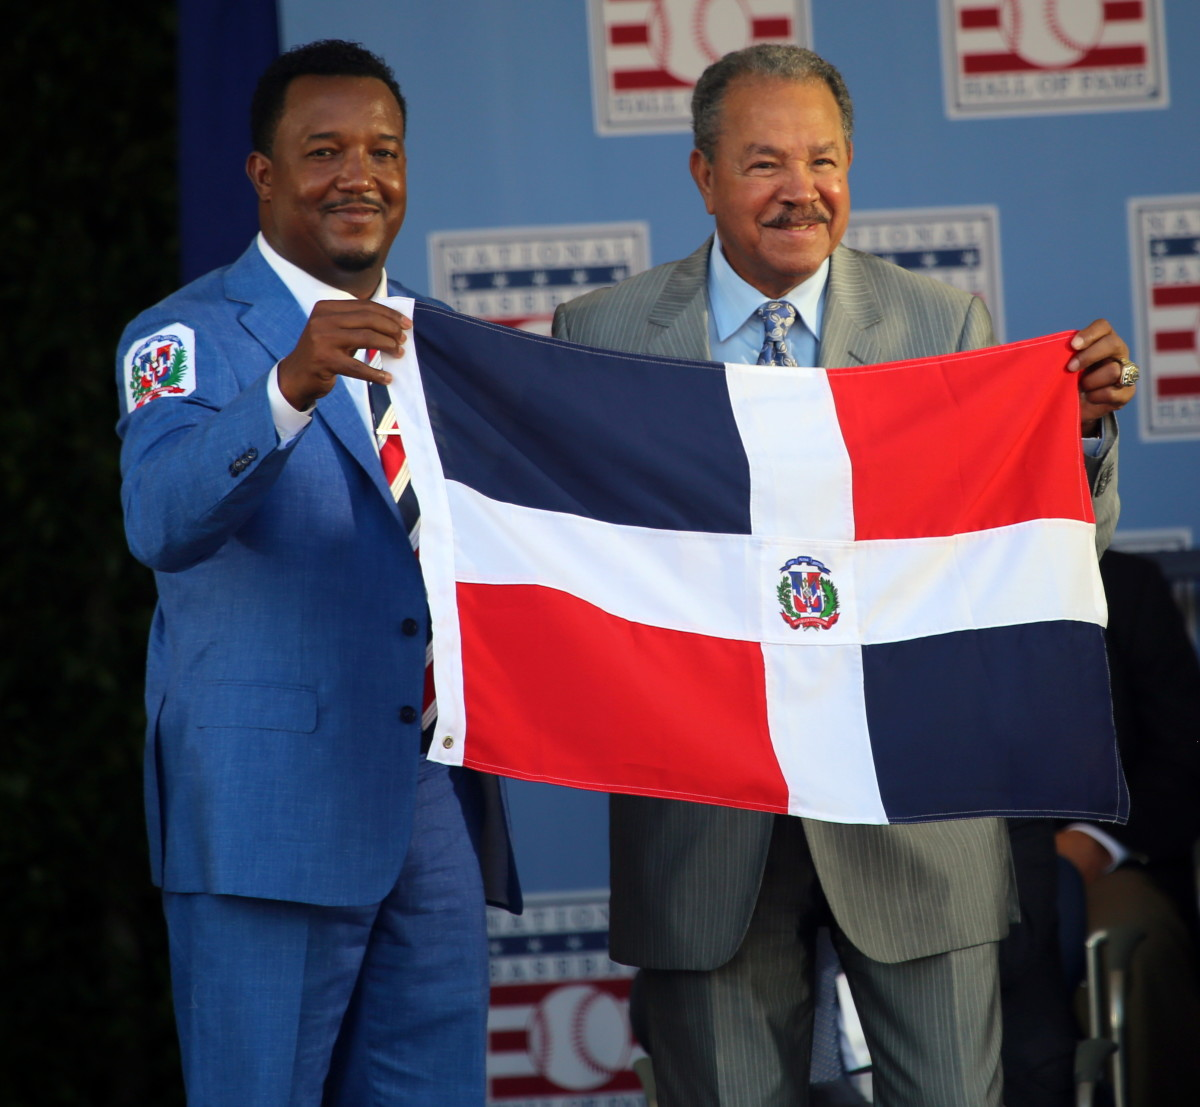 Pedro Martinez (left) and Juan Marichal hold the flag of the Dominican Republic after Martinez became the second native of the island to be inducted to the Hall of Fame. Marichal and Martinez were joined by Vladimir Guerrero in 2018.